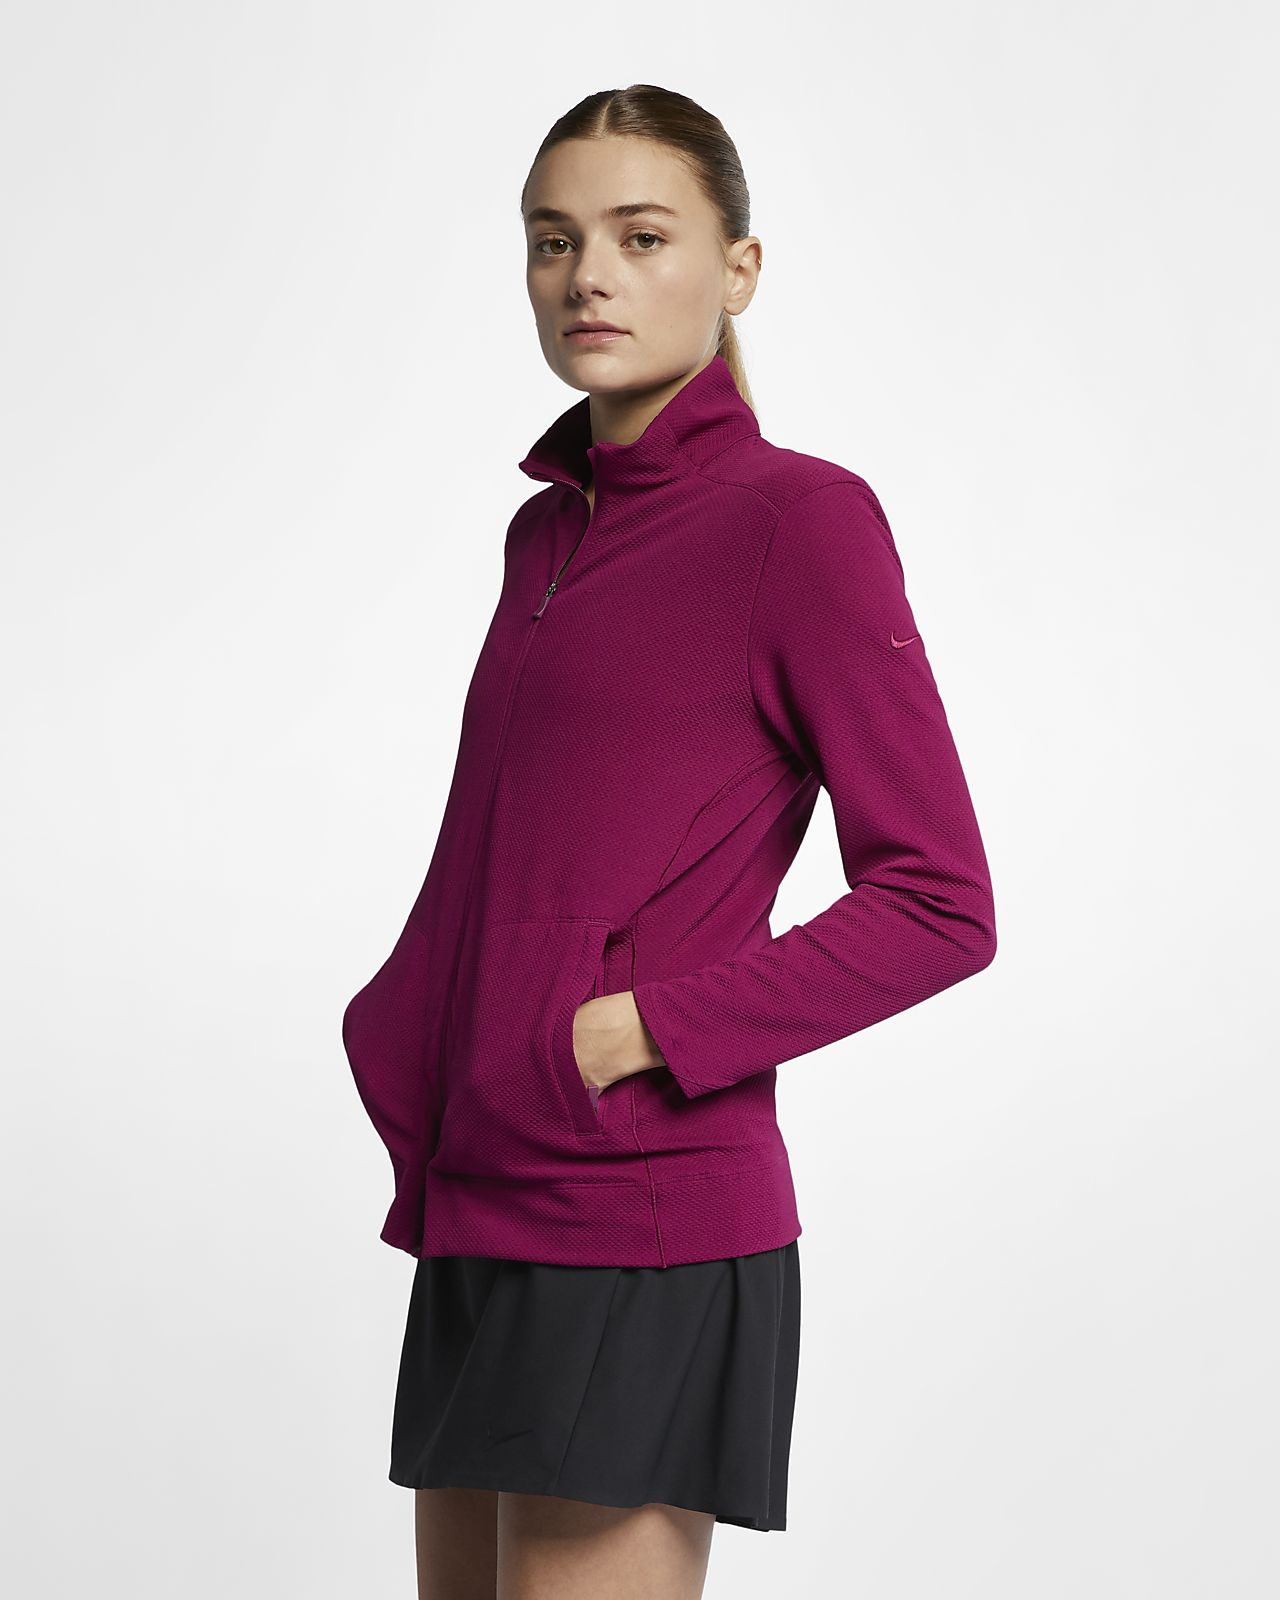 Nike Dri-FIT UV Damen-Golfjacke